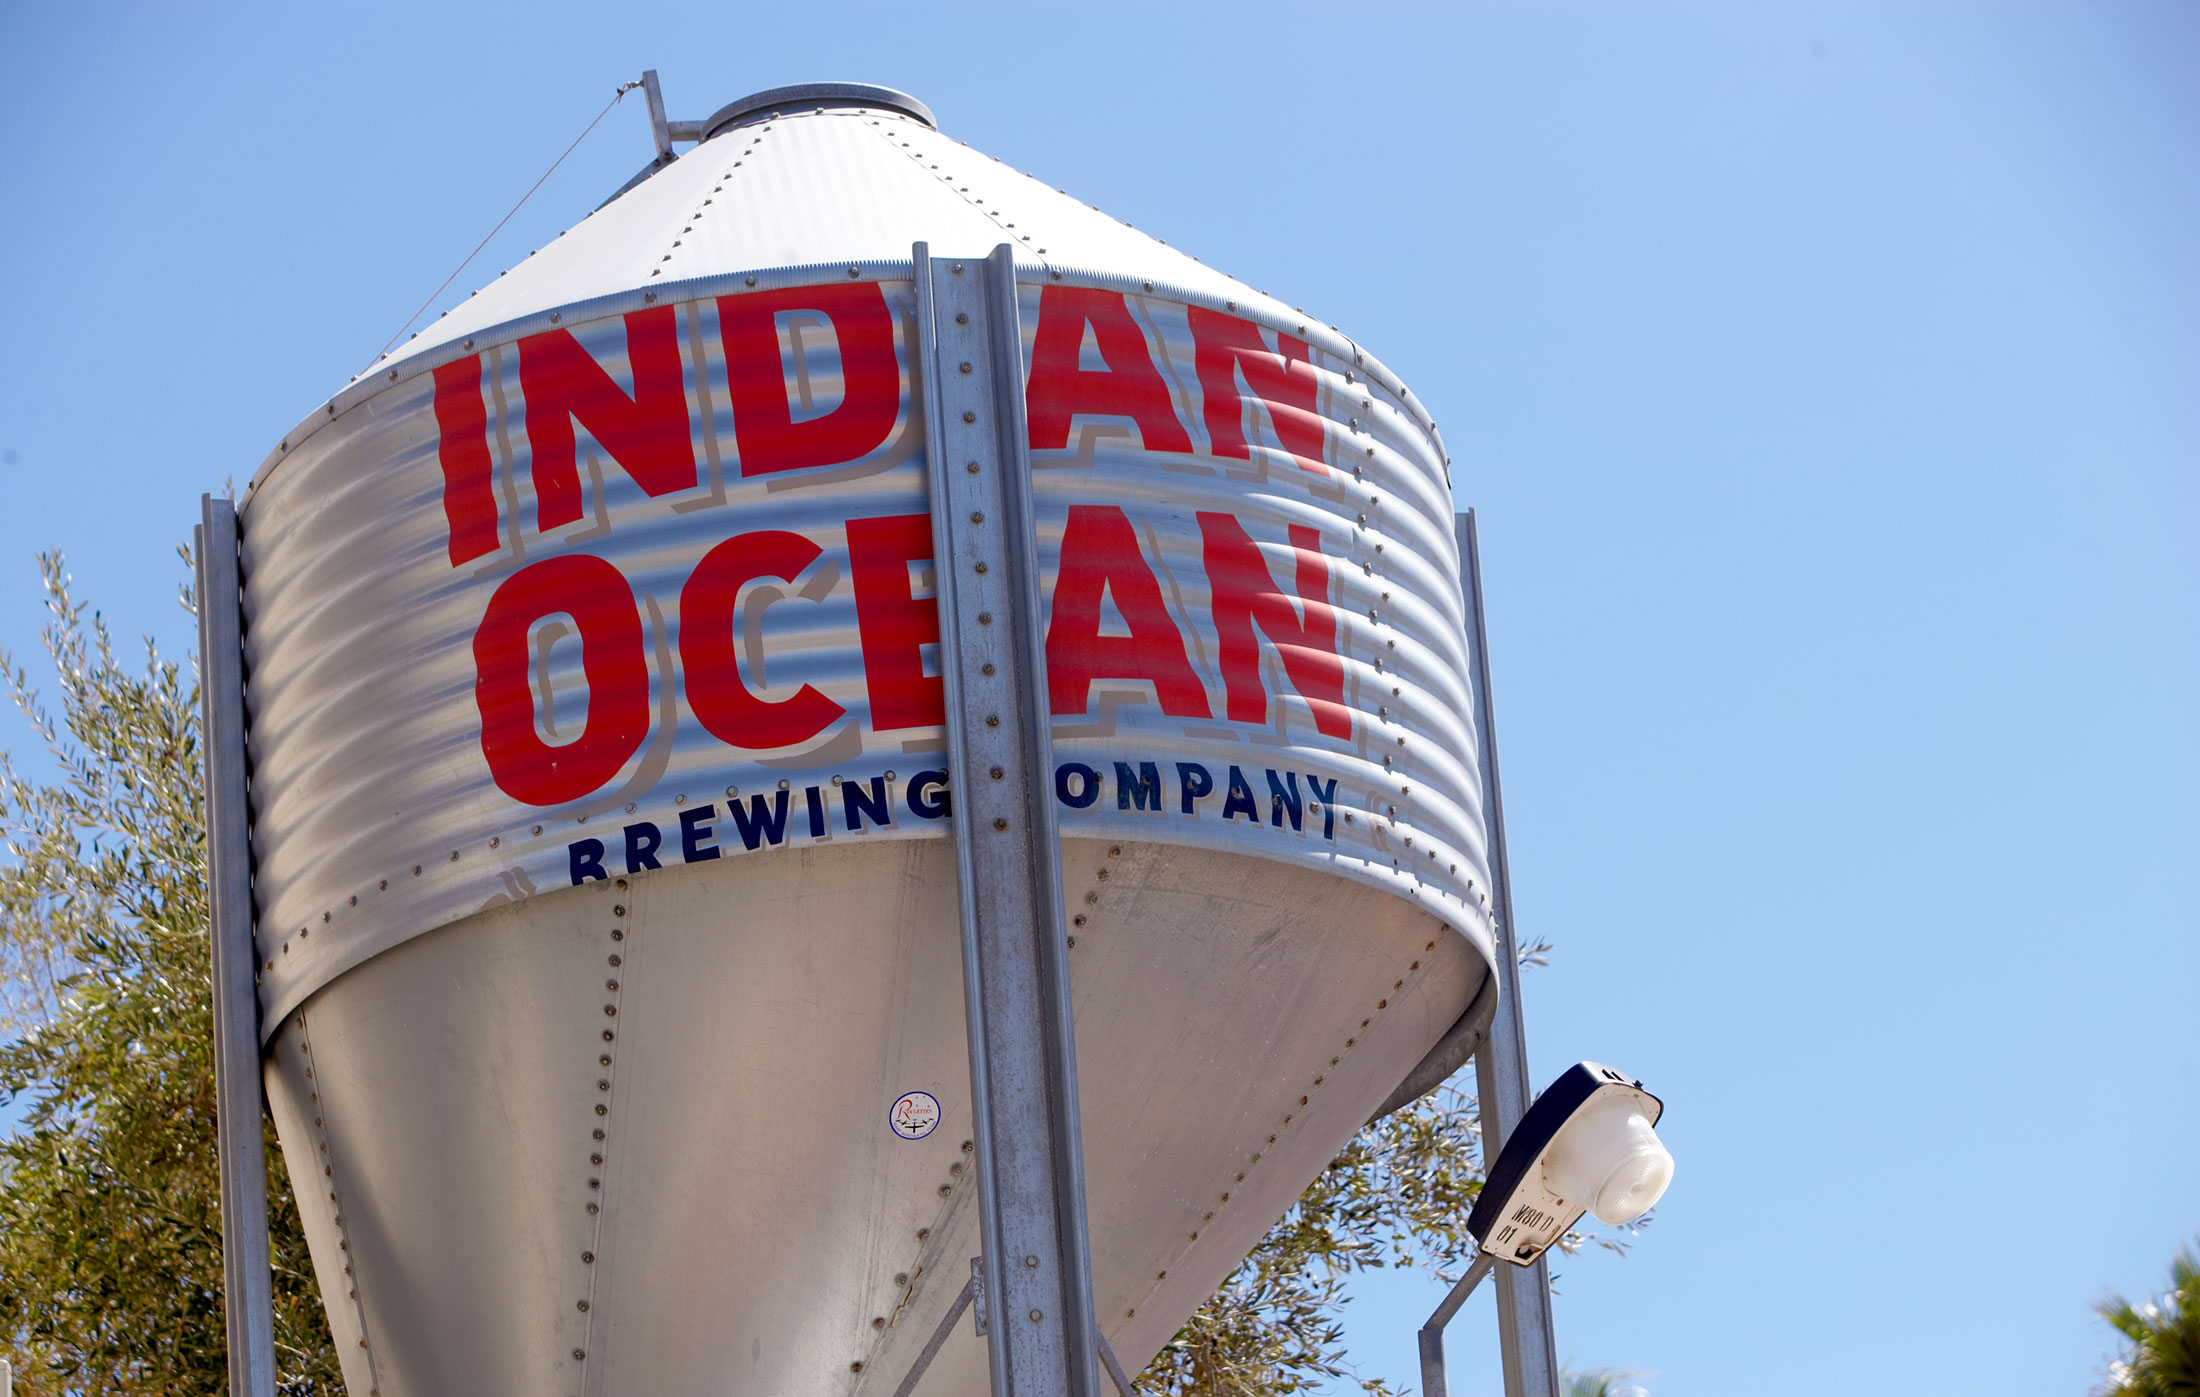 Indian Ocean Brewing Company – Silo Graphic